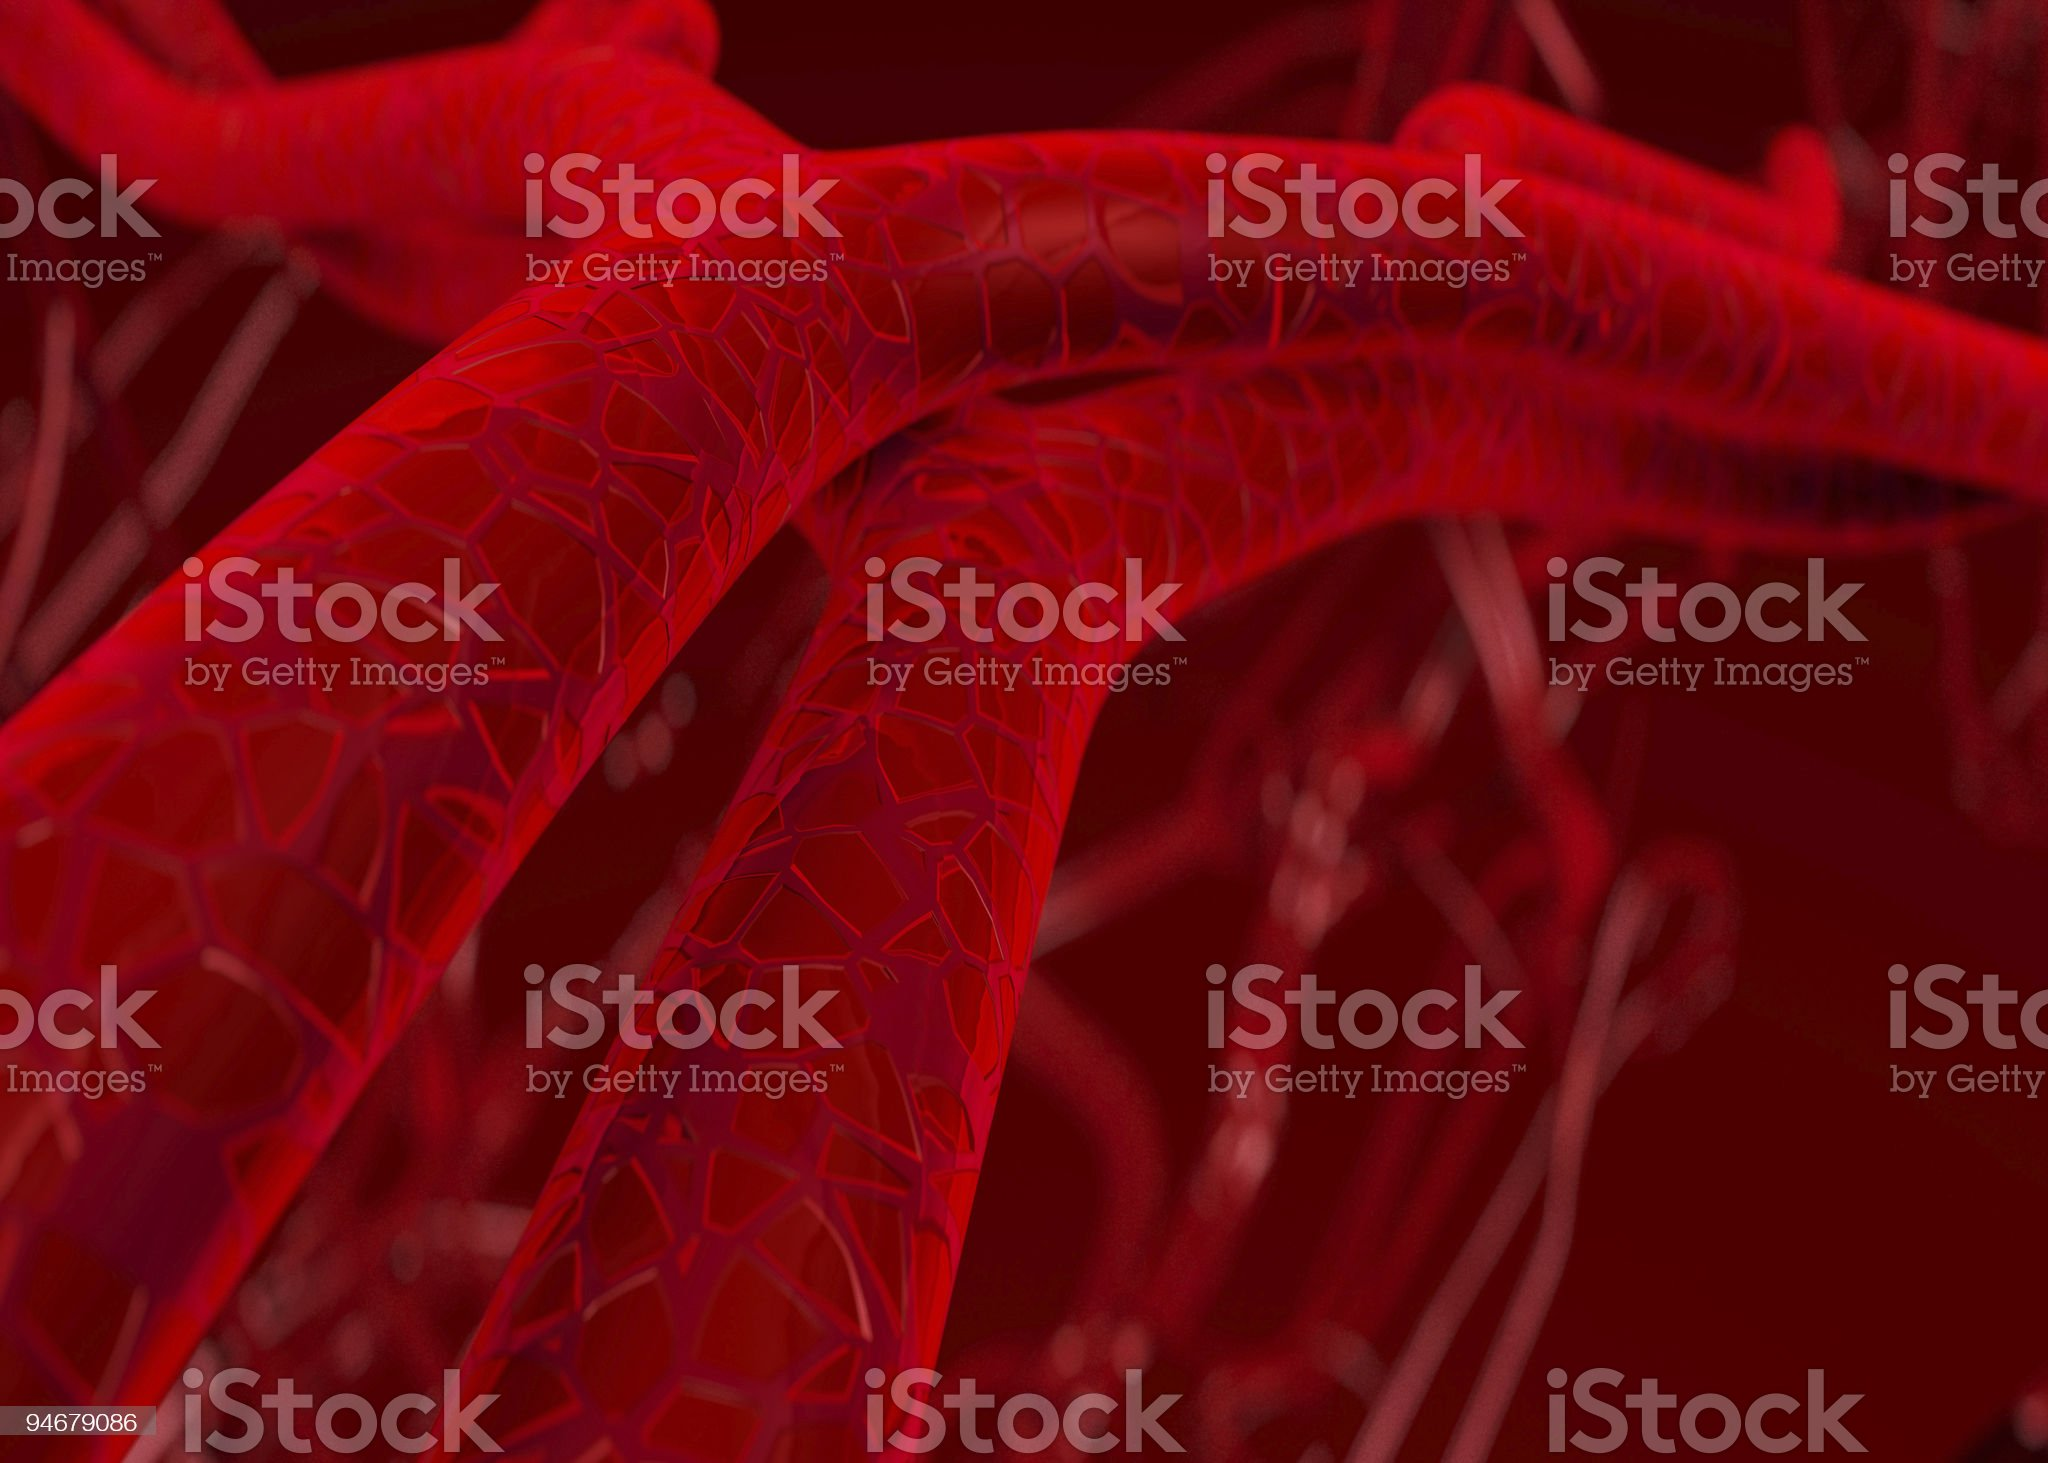 Blood arteries and veins royalty-free stock vector art